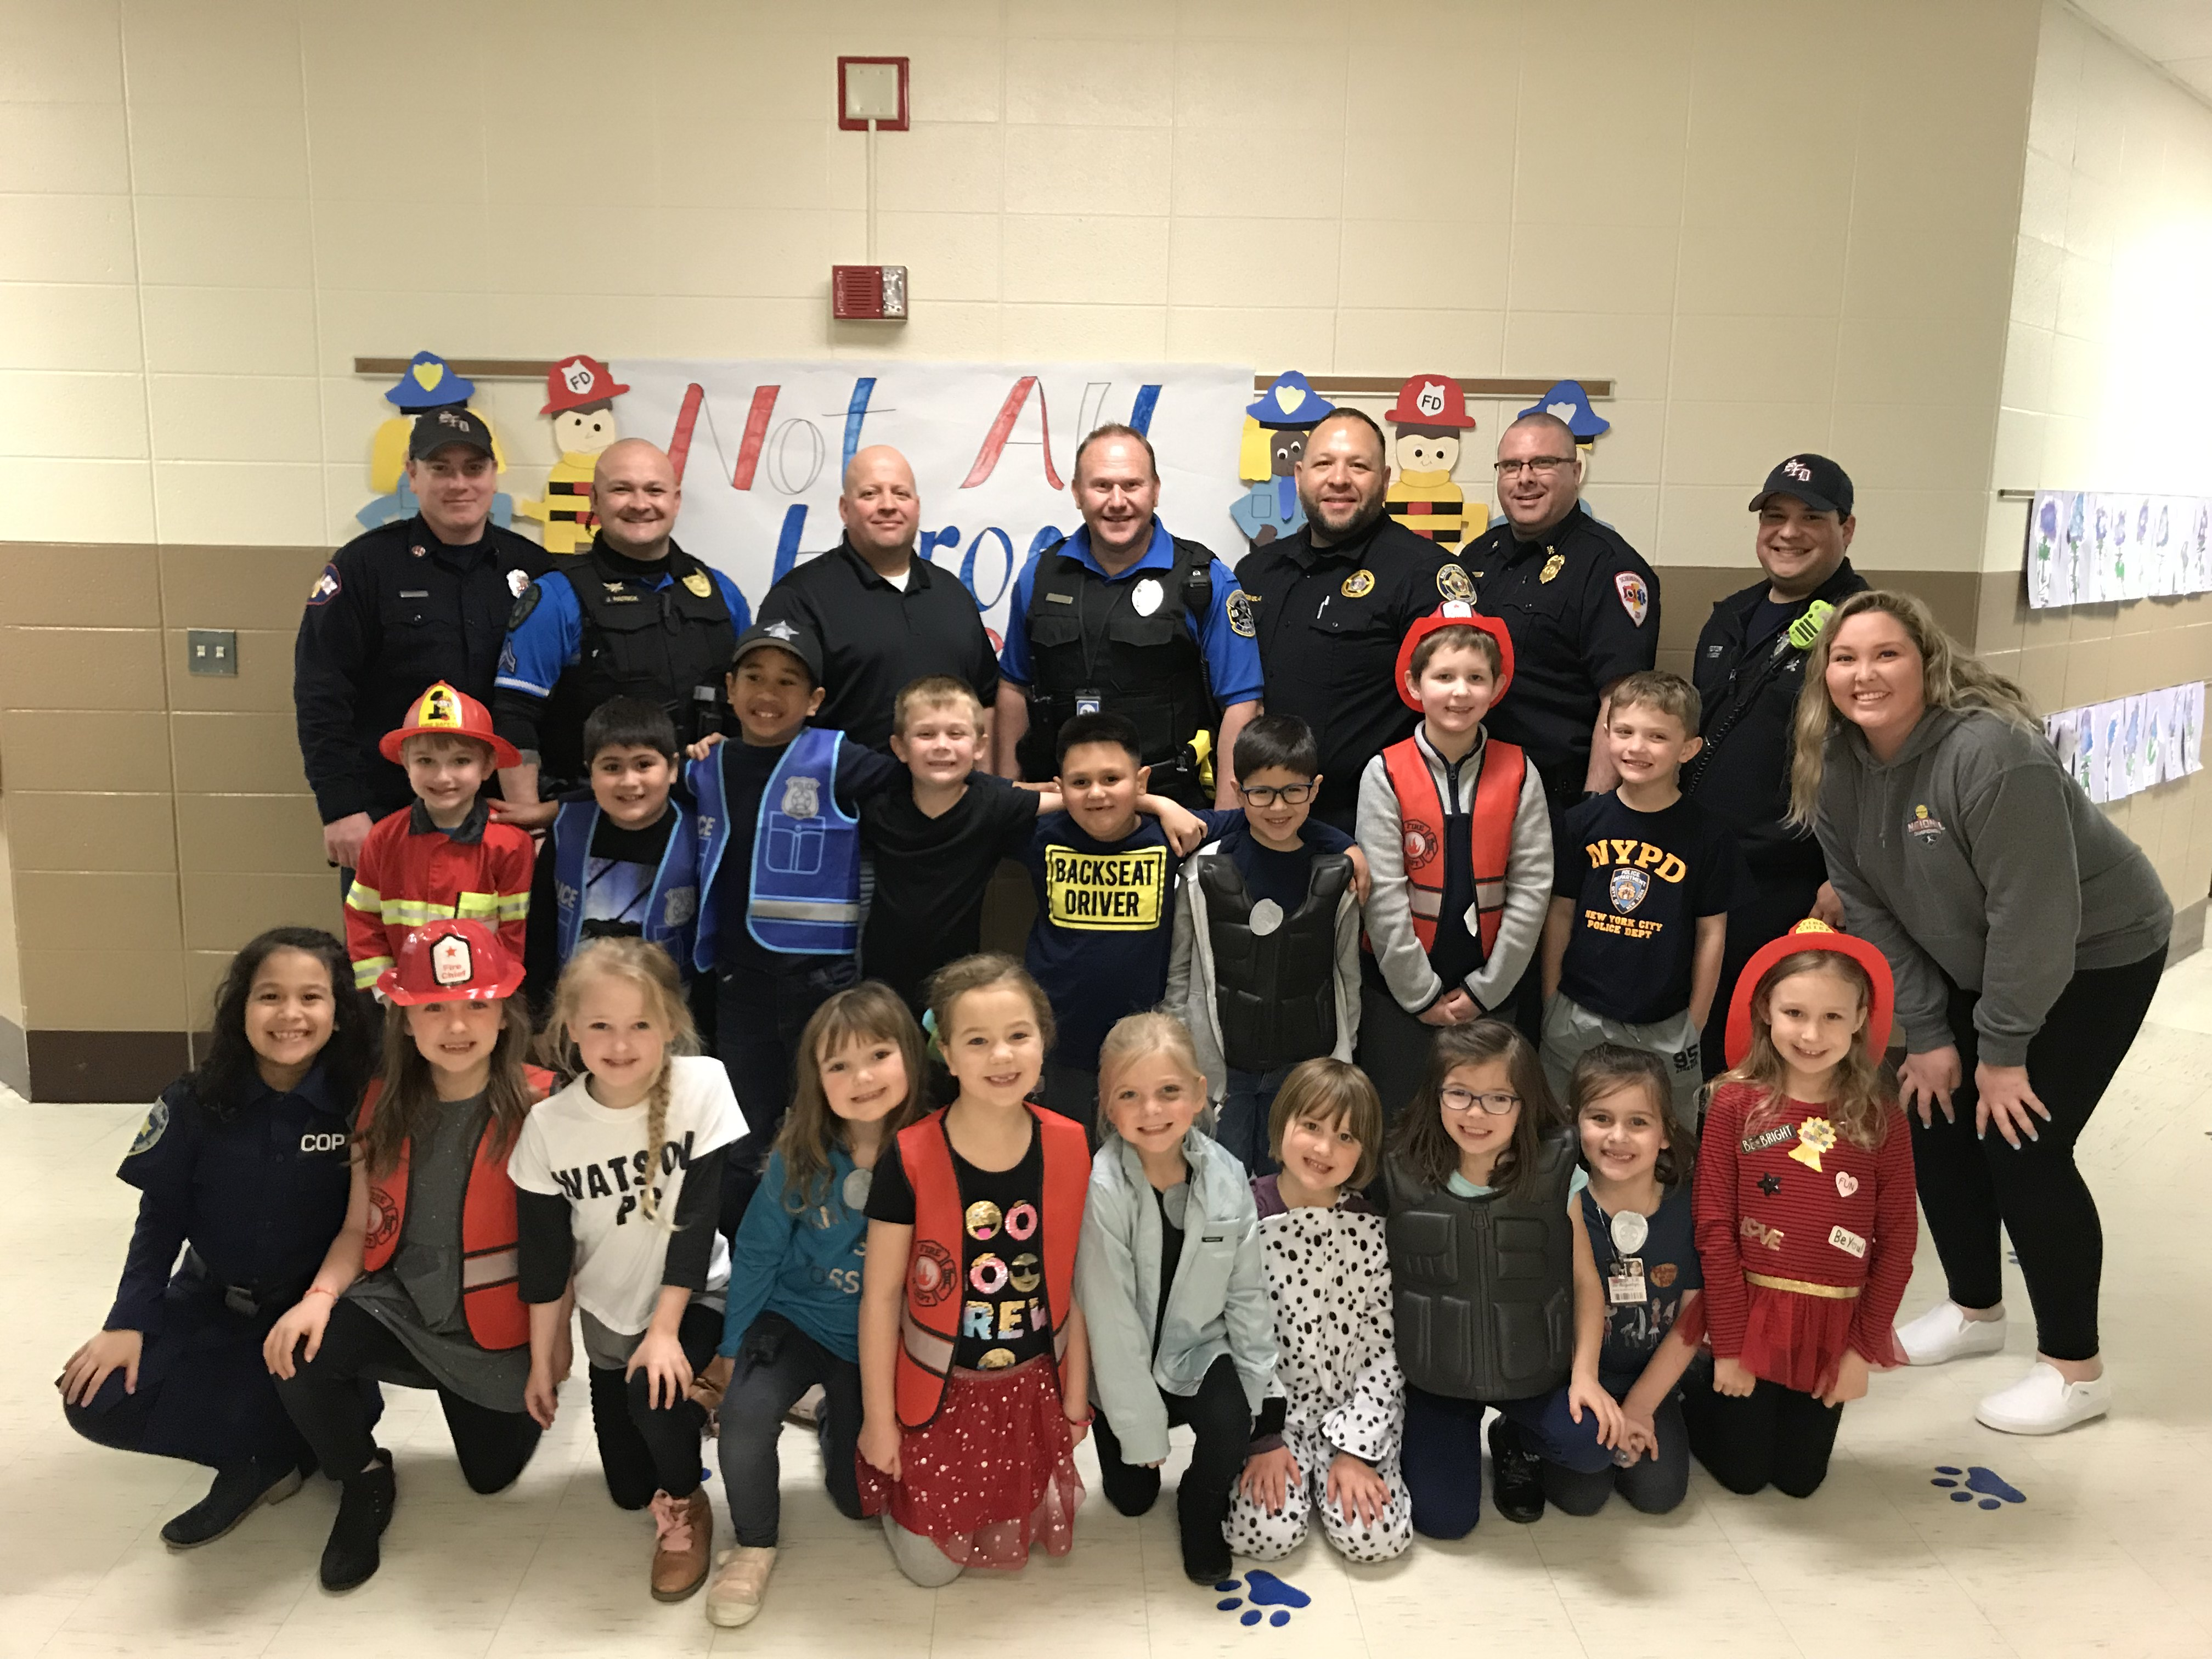 Watson kindergarten celebrates Hero Day with local police and firefighters.